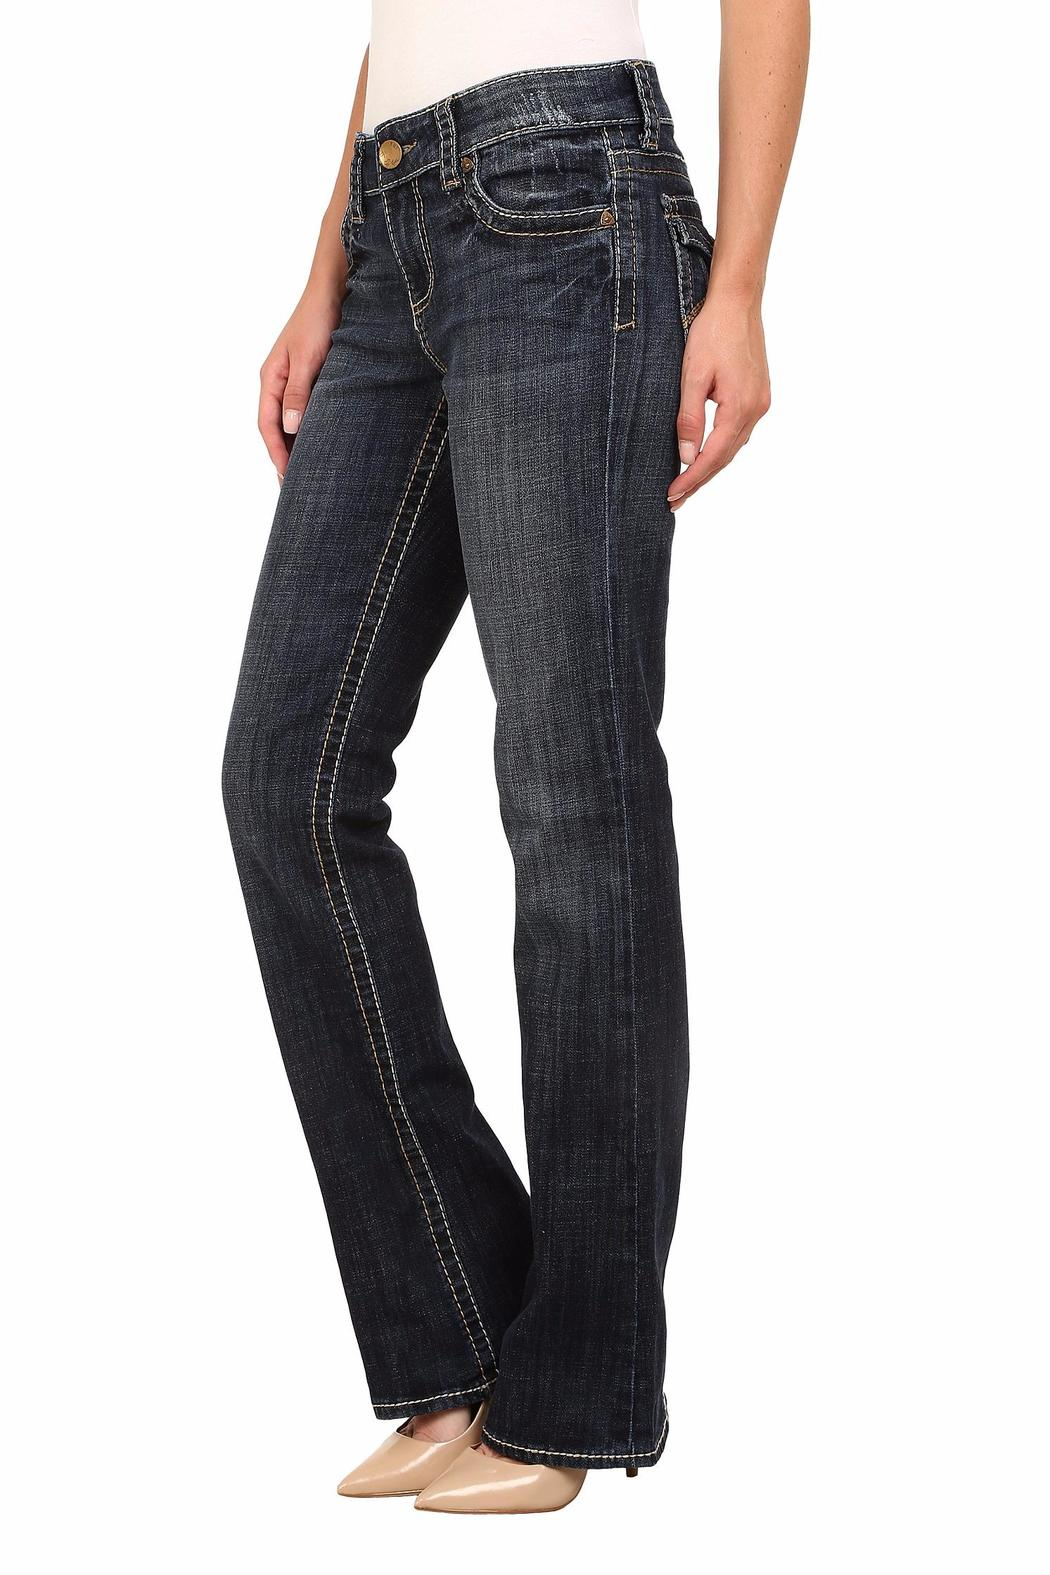 Kut from the Kloth Natalie Bootleg Jeans - Side Cropped Image